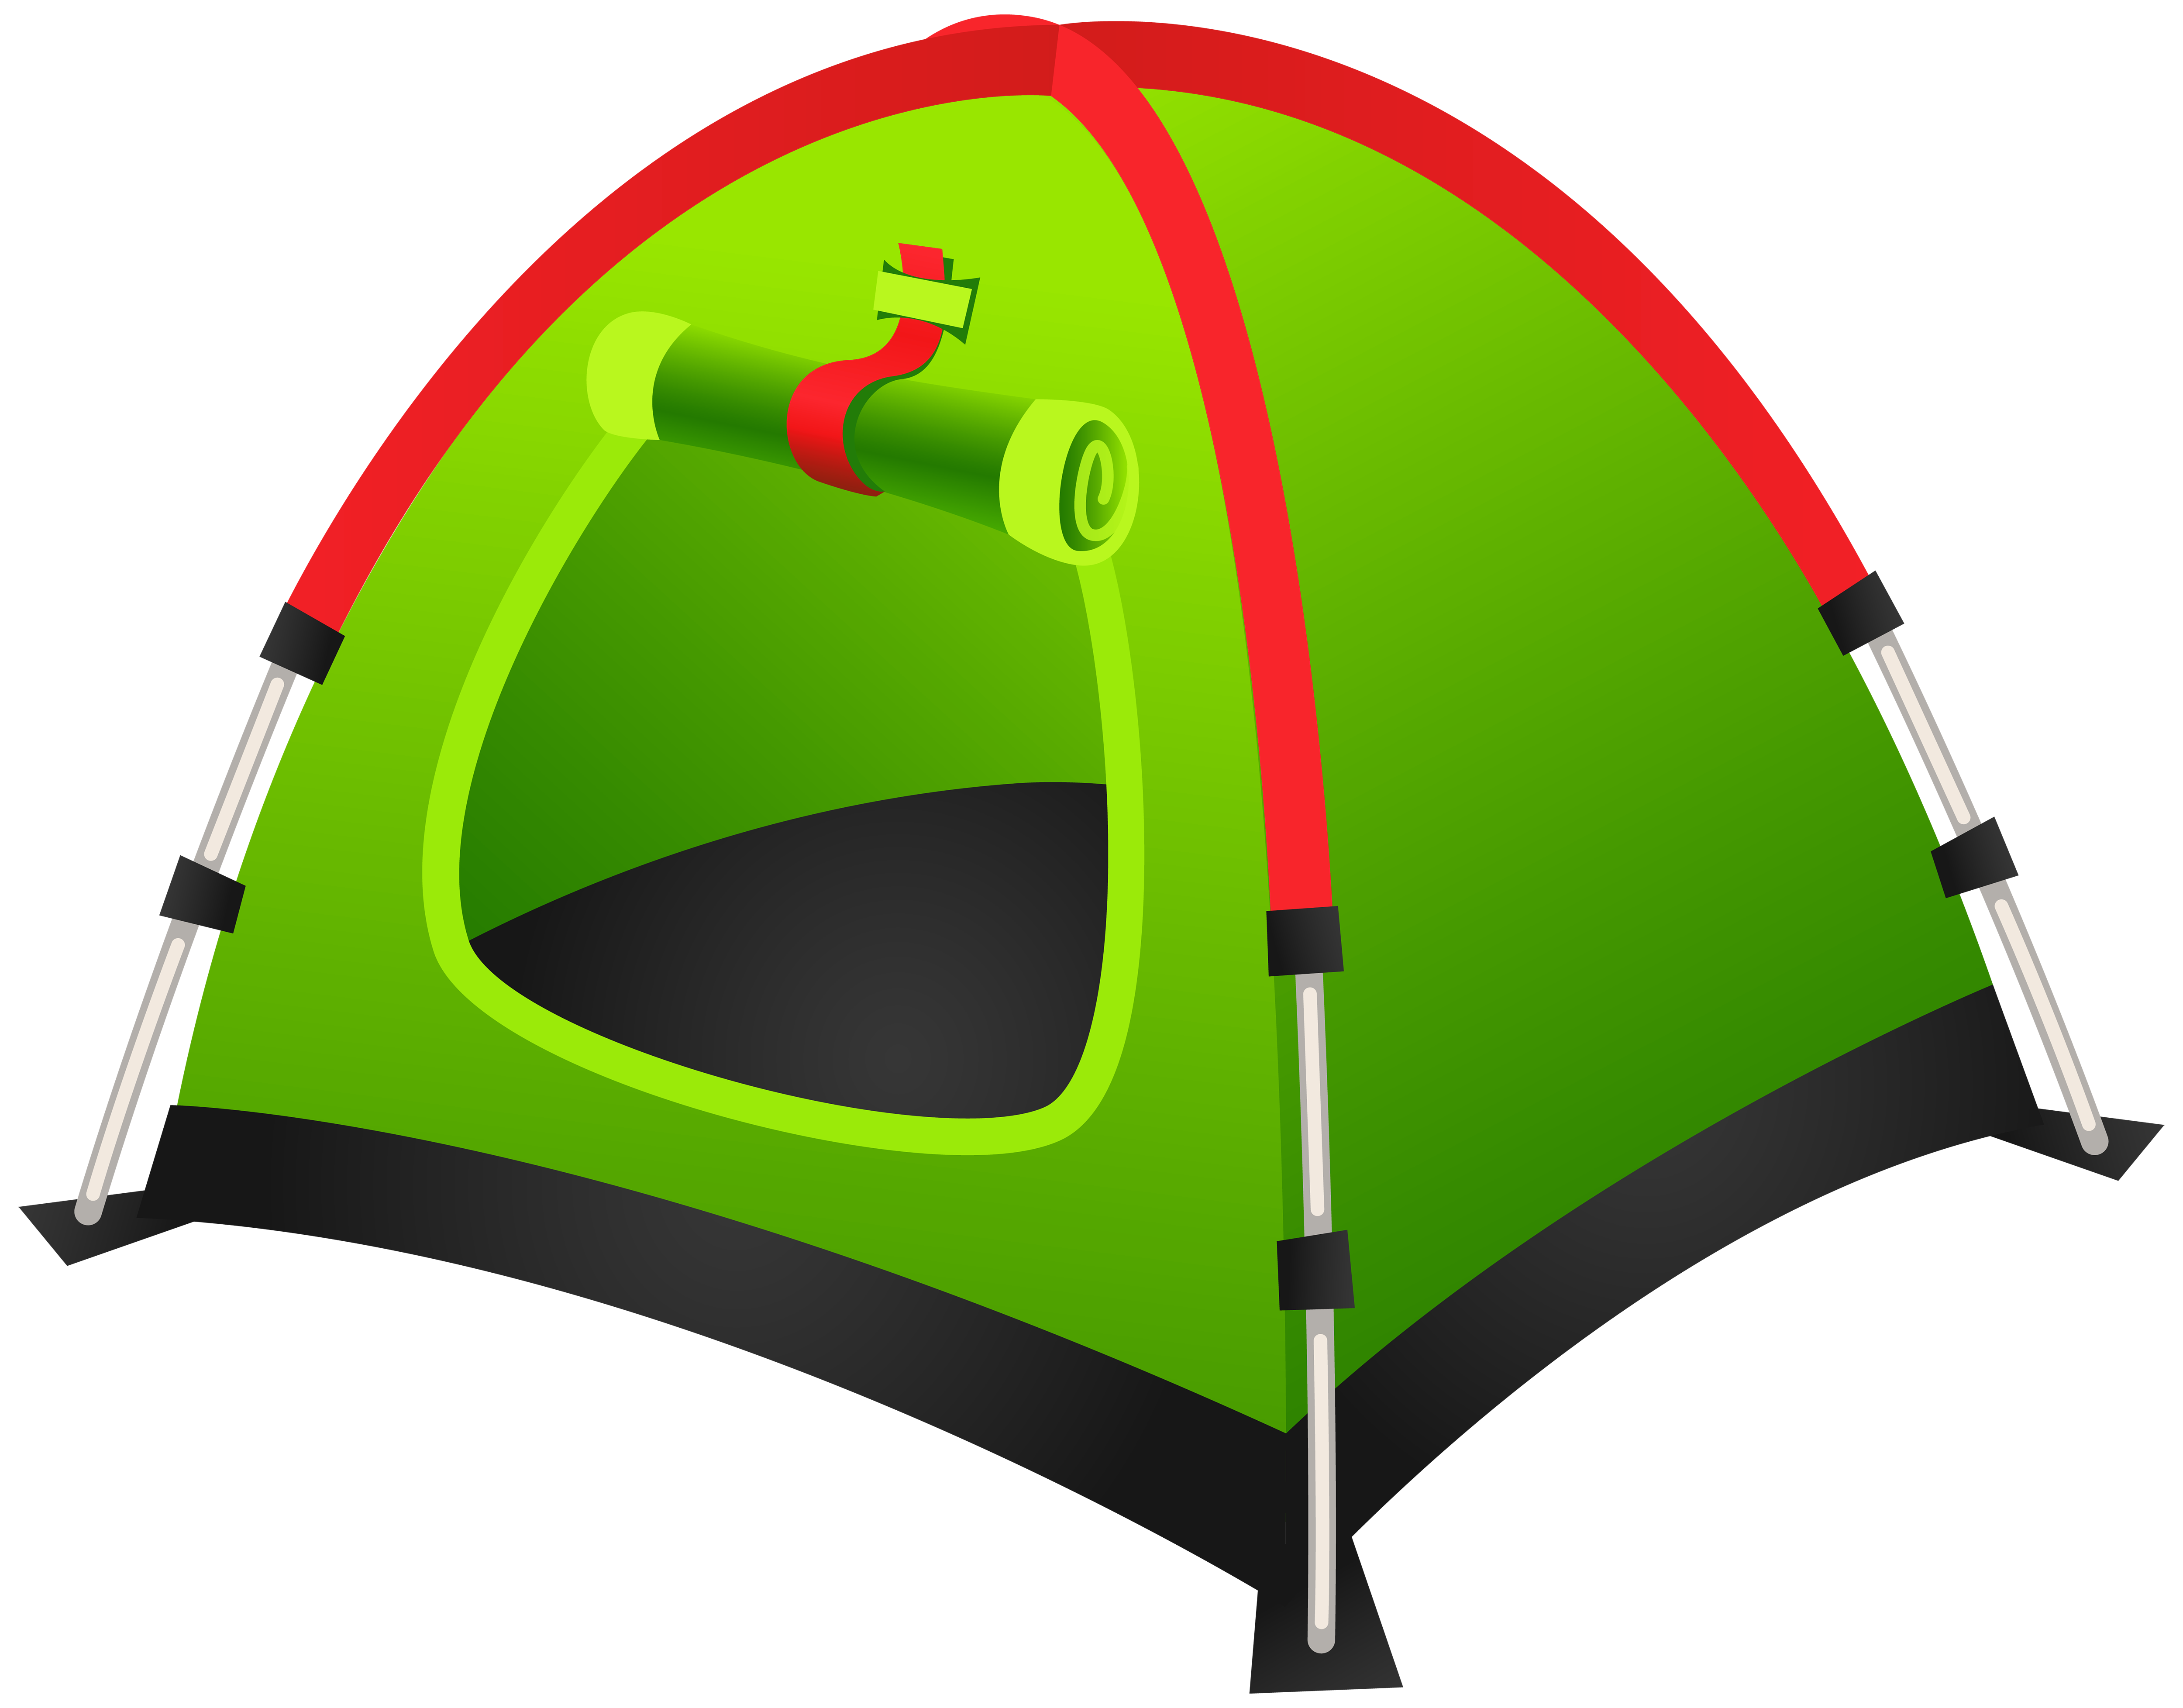 Tourist green png image. Clipart tent